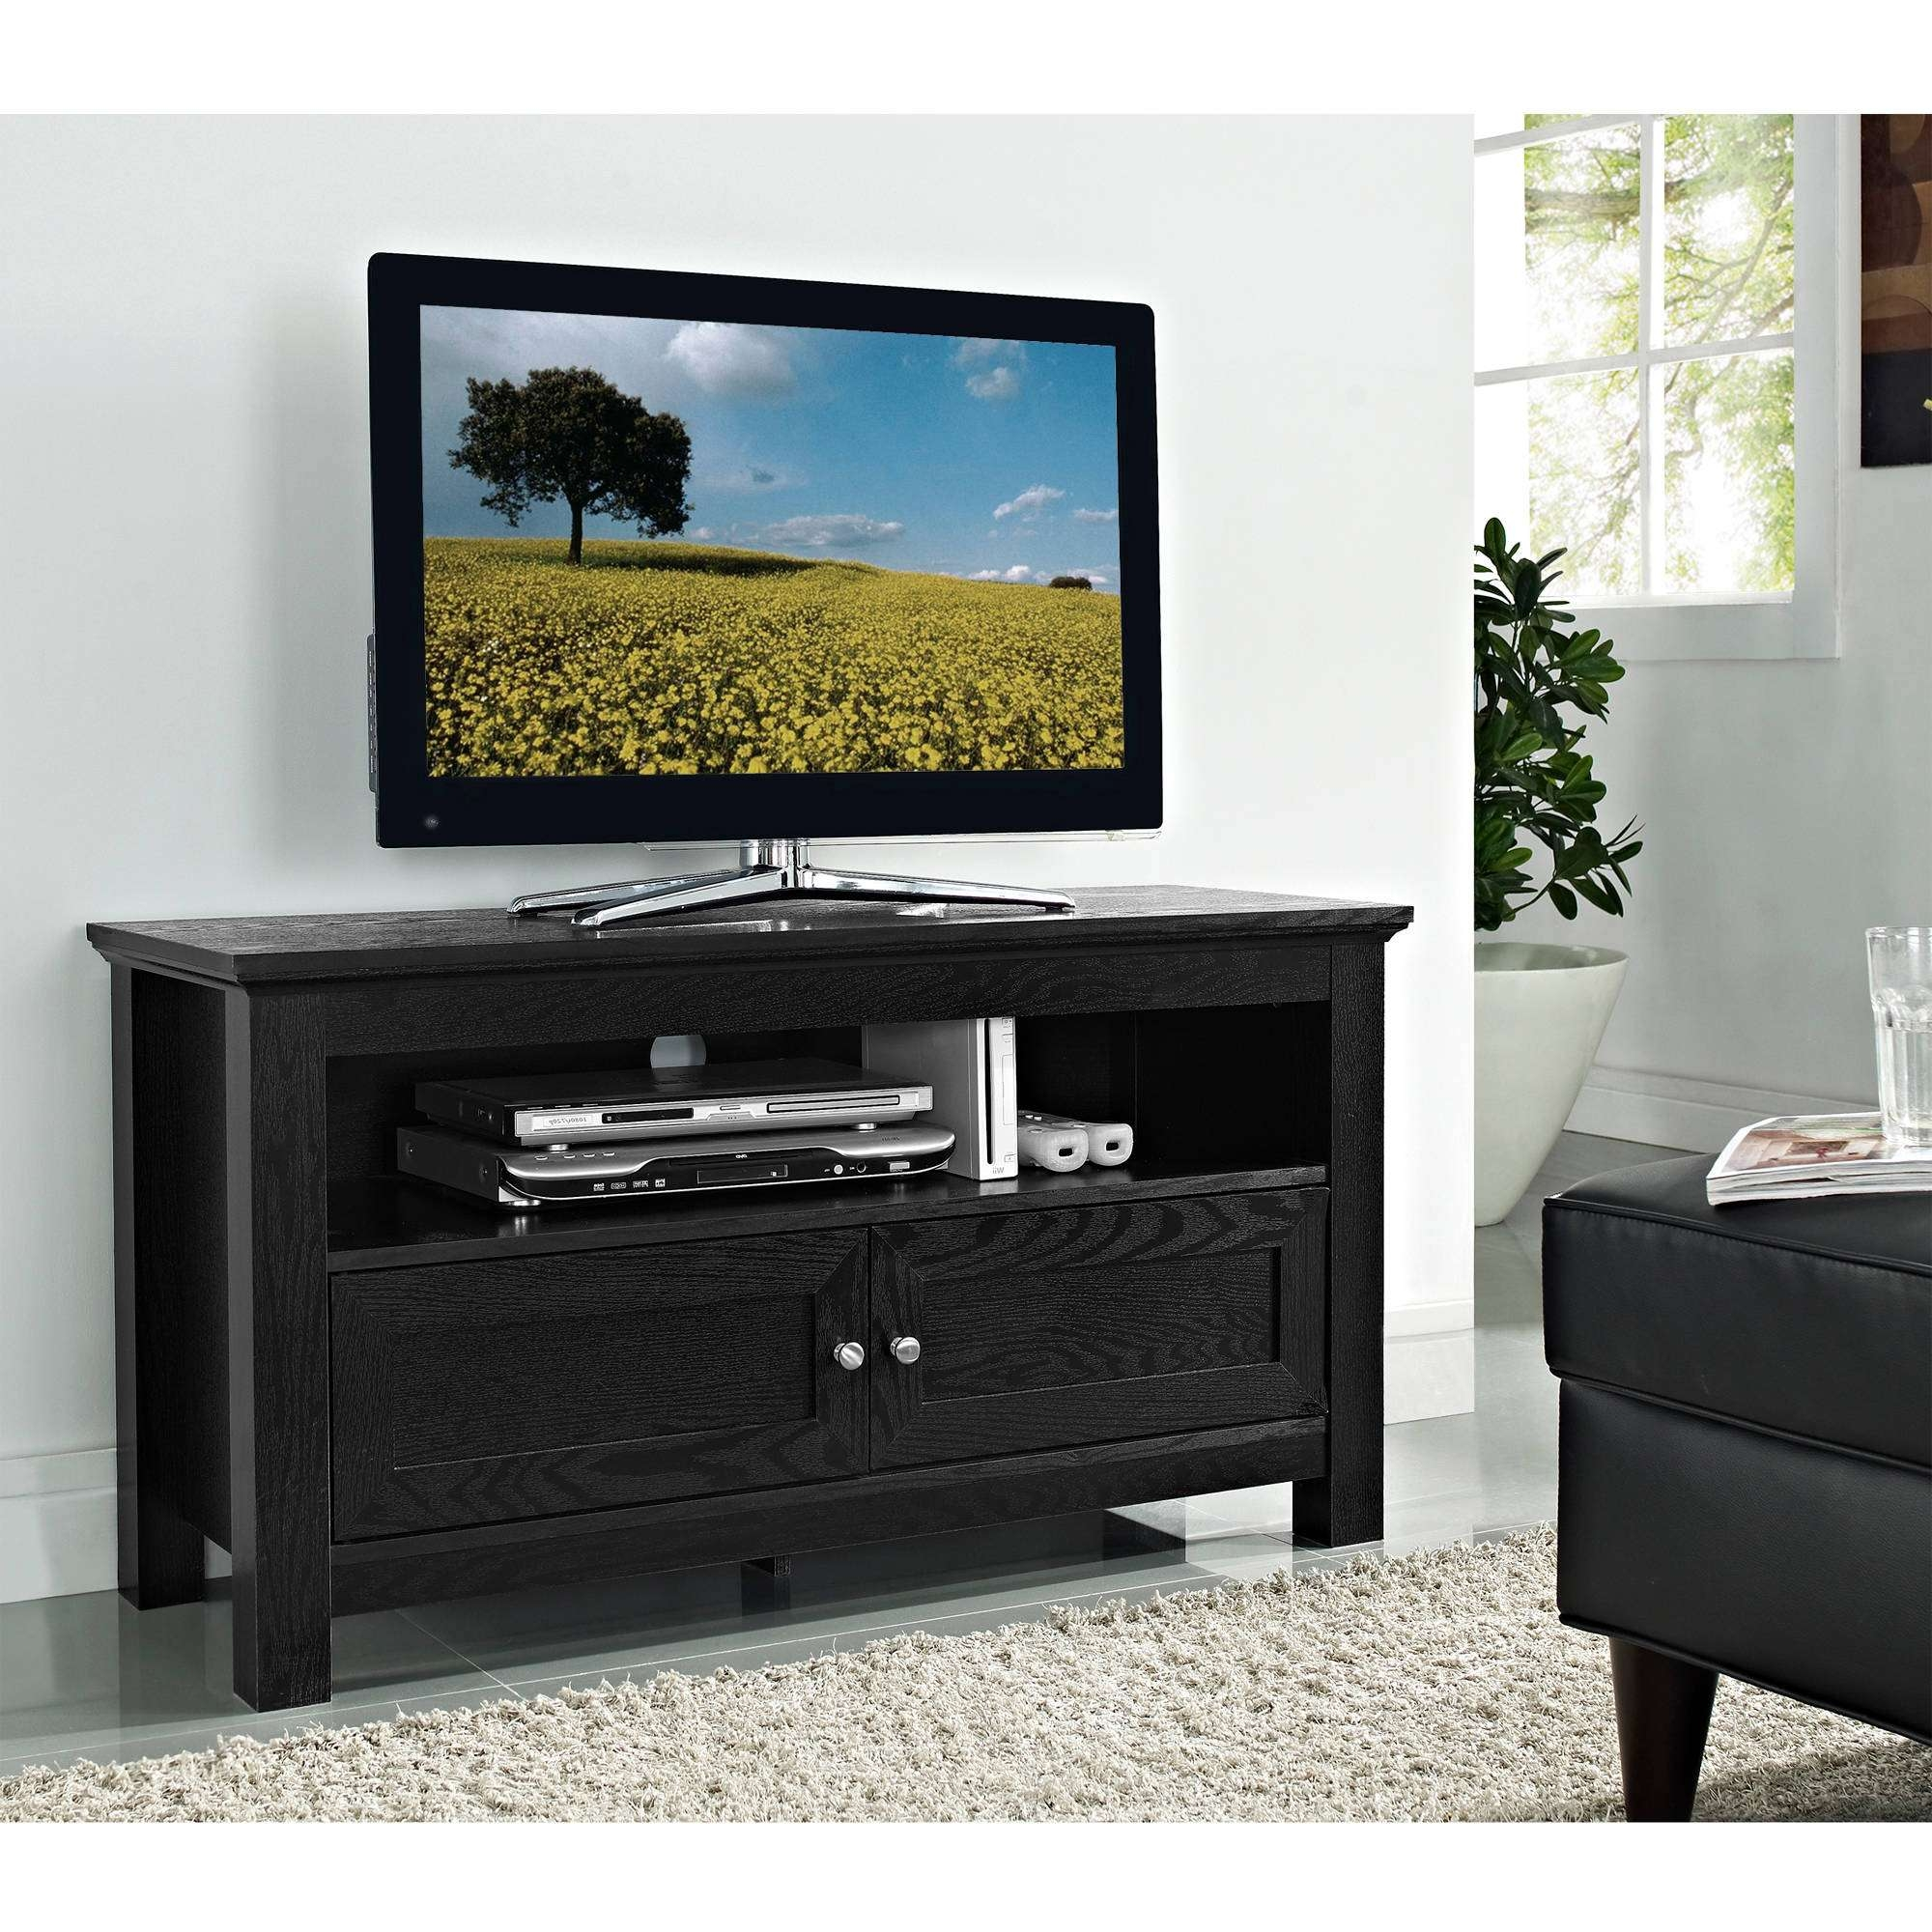 Black Laminated Wooden Tall Tv Stand For Bedroom Using Double Regarding Tall Black Tv Cabinets (View 5 of 20)